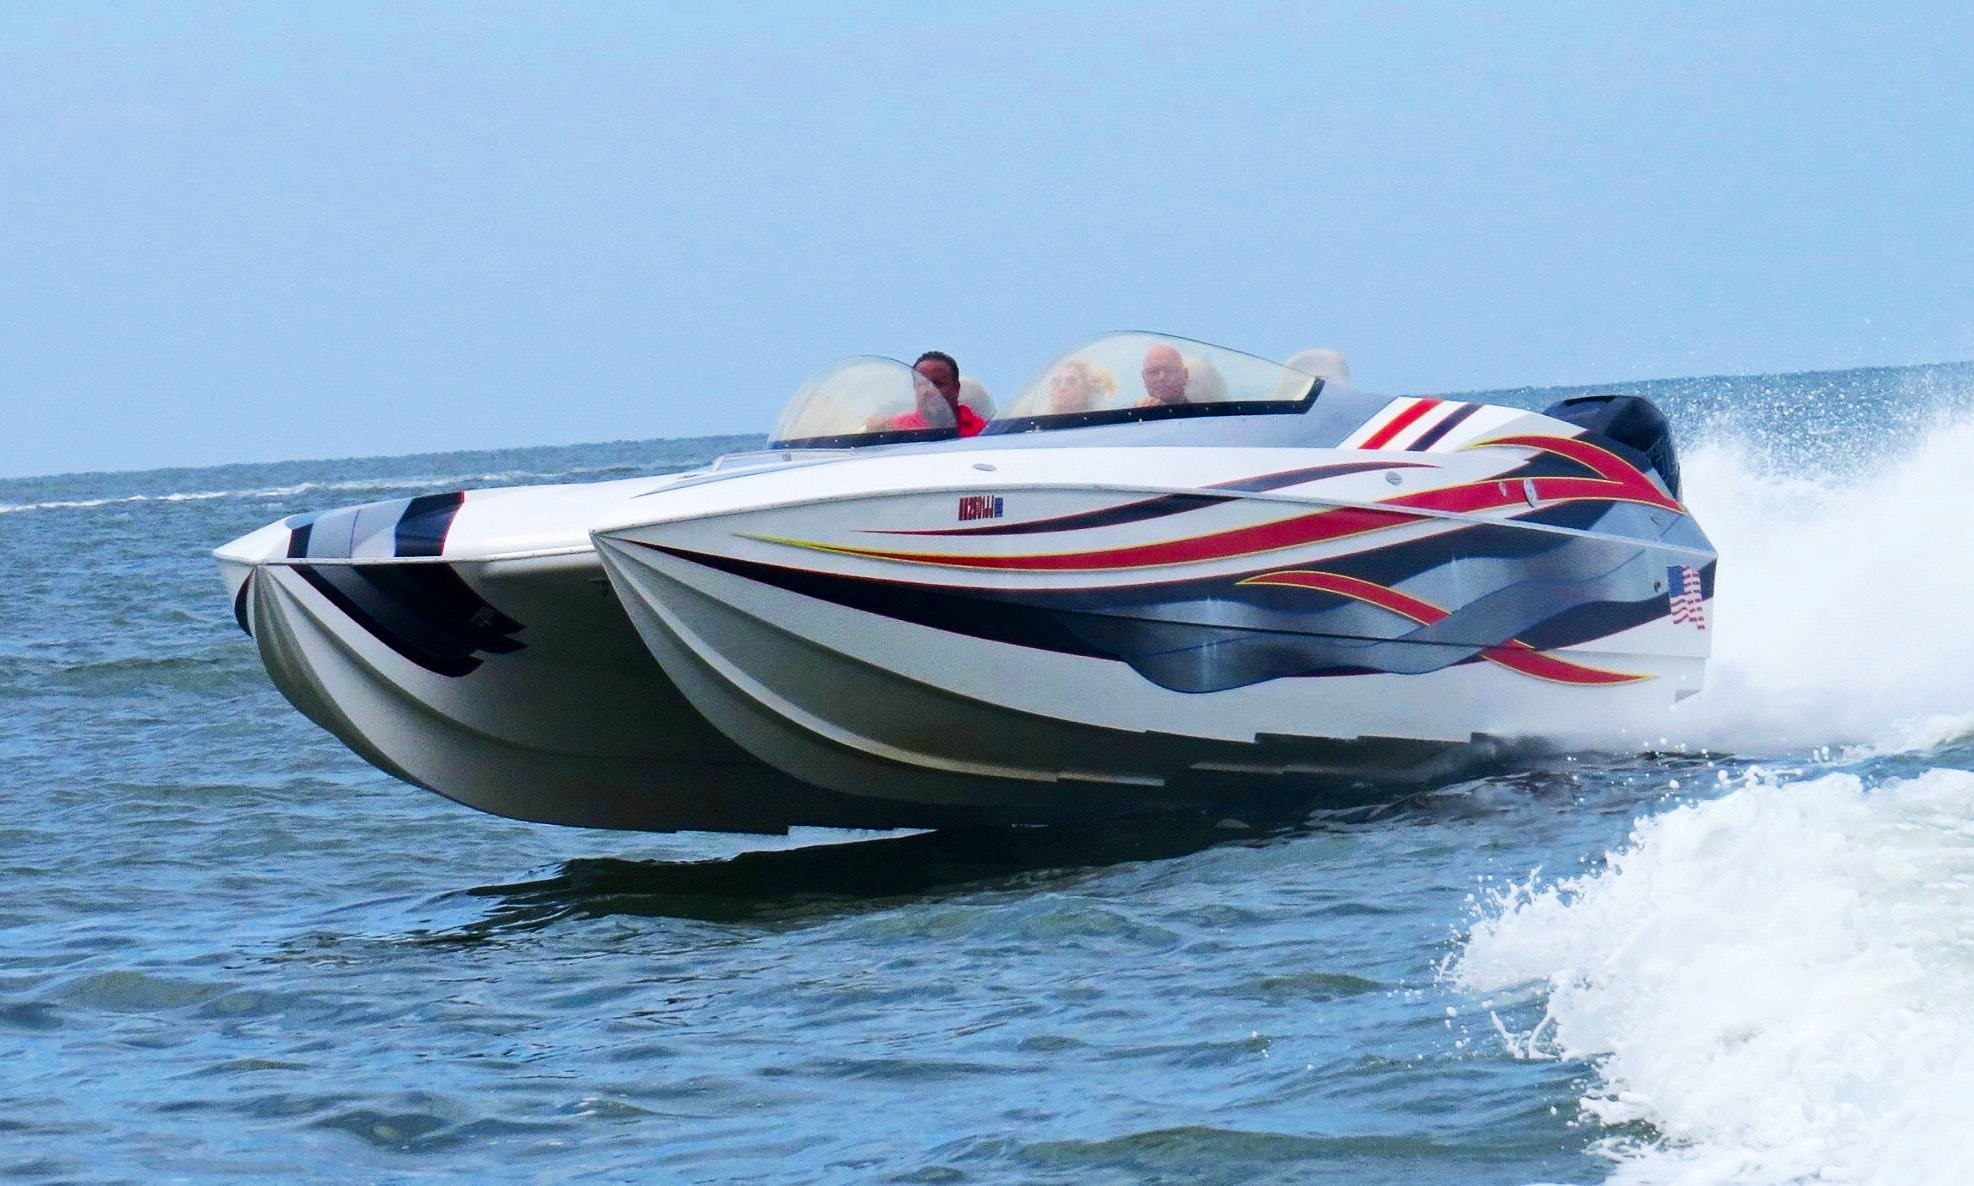 Hourly Boat Rentals